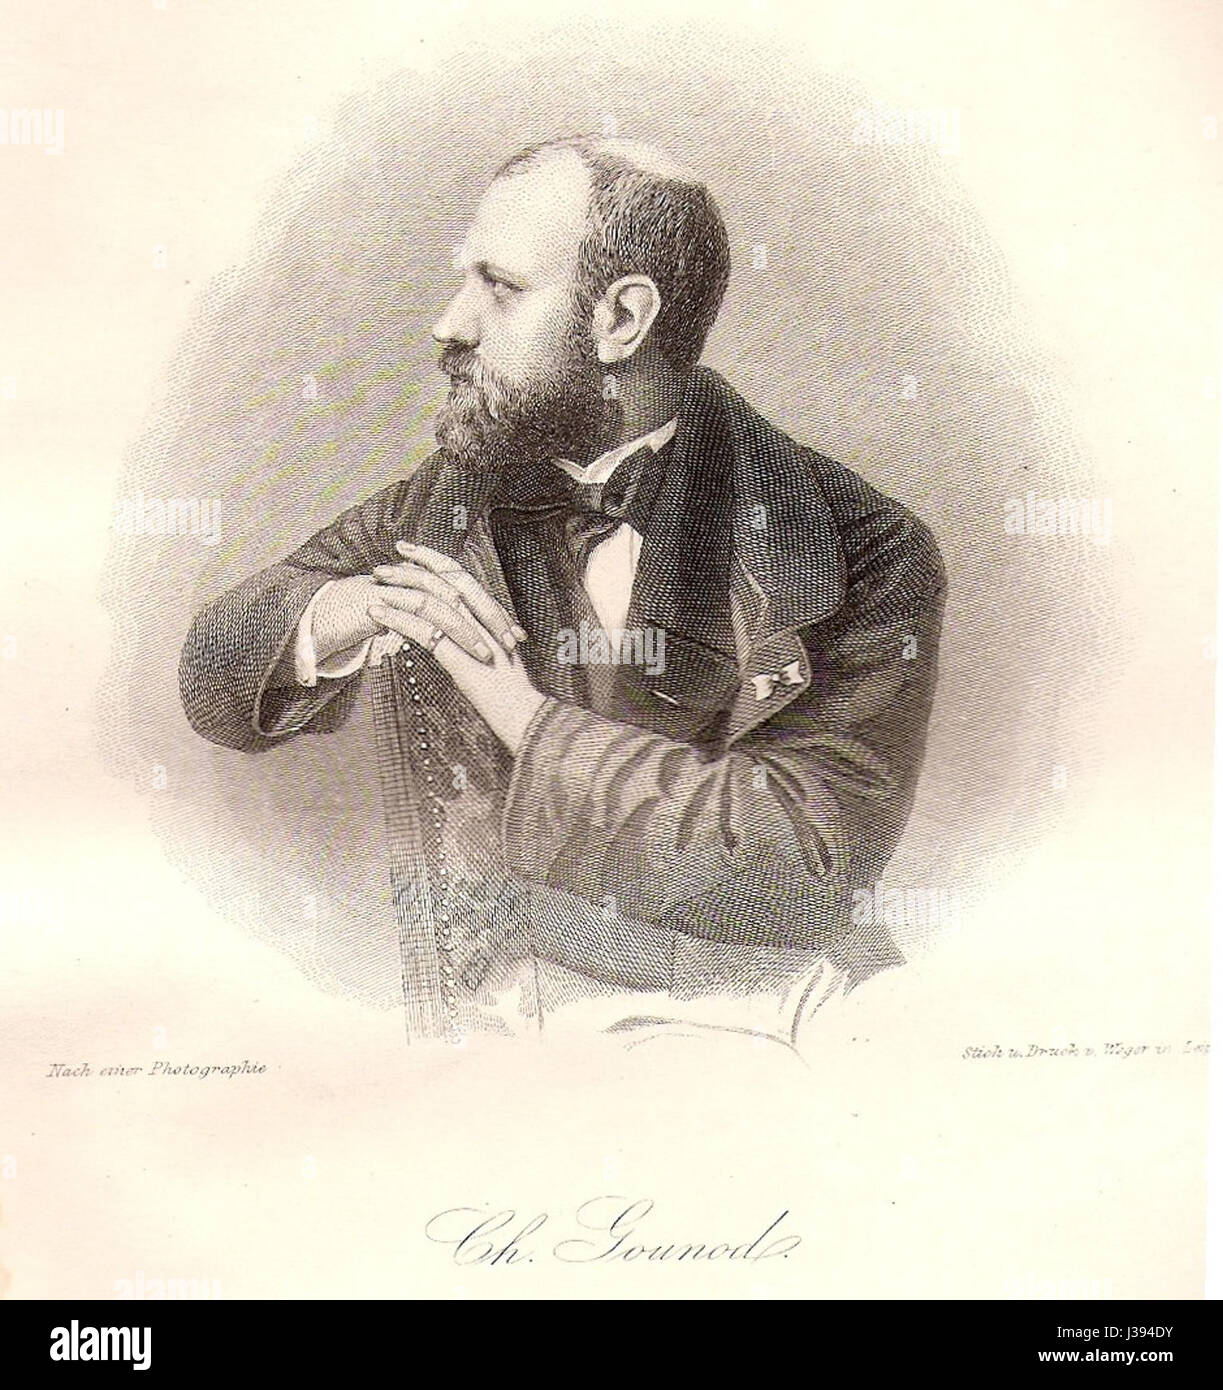 Charles Gounod, Stahlstich 1863 - Stock Image